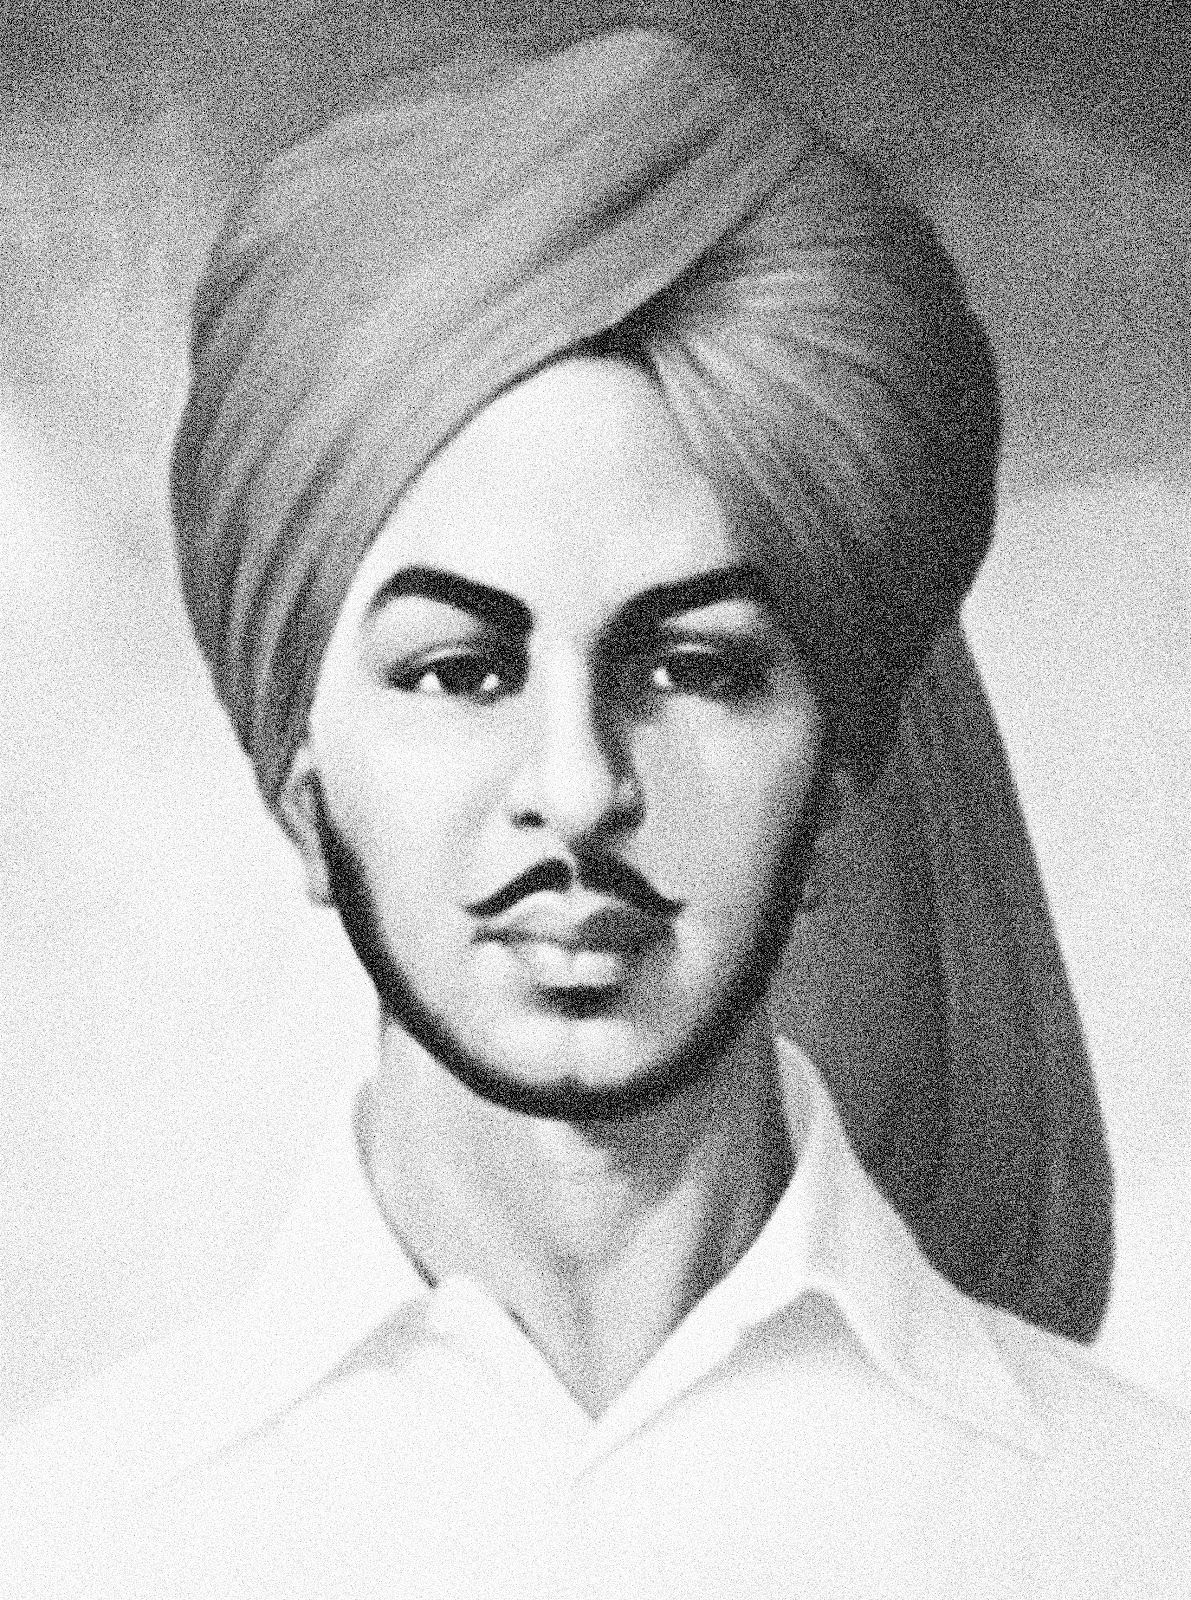 Bhagat Singh 1000 images about bhagat singh on Pinterest Legends Freedom